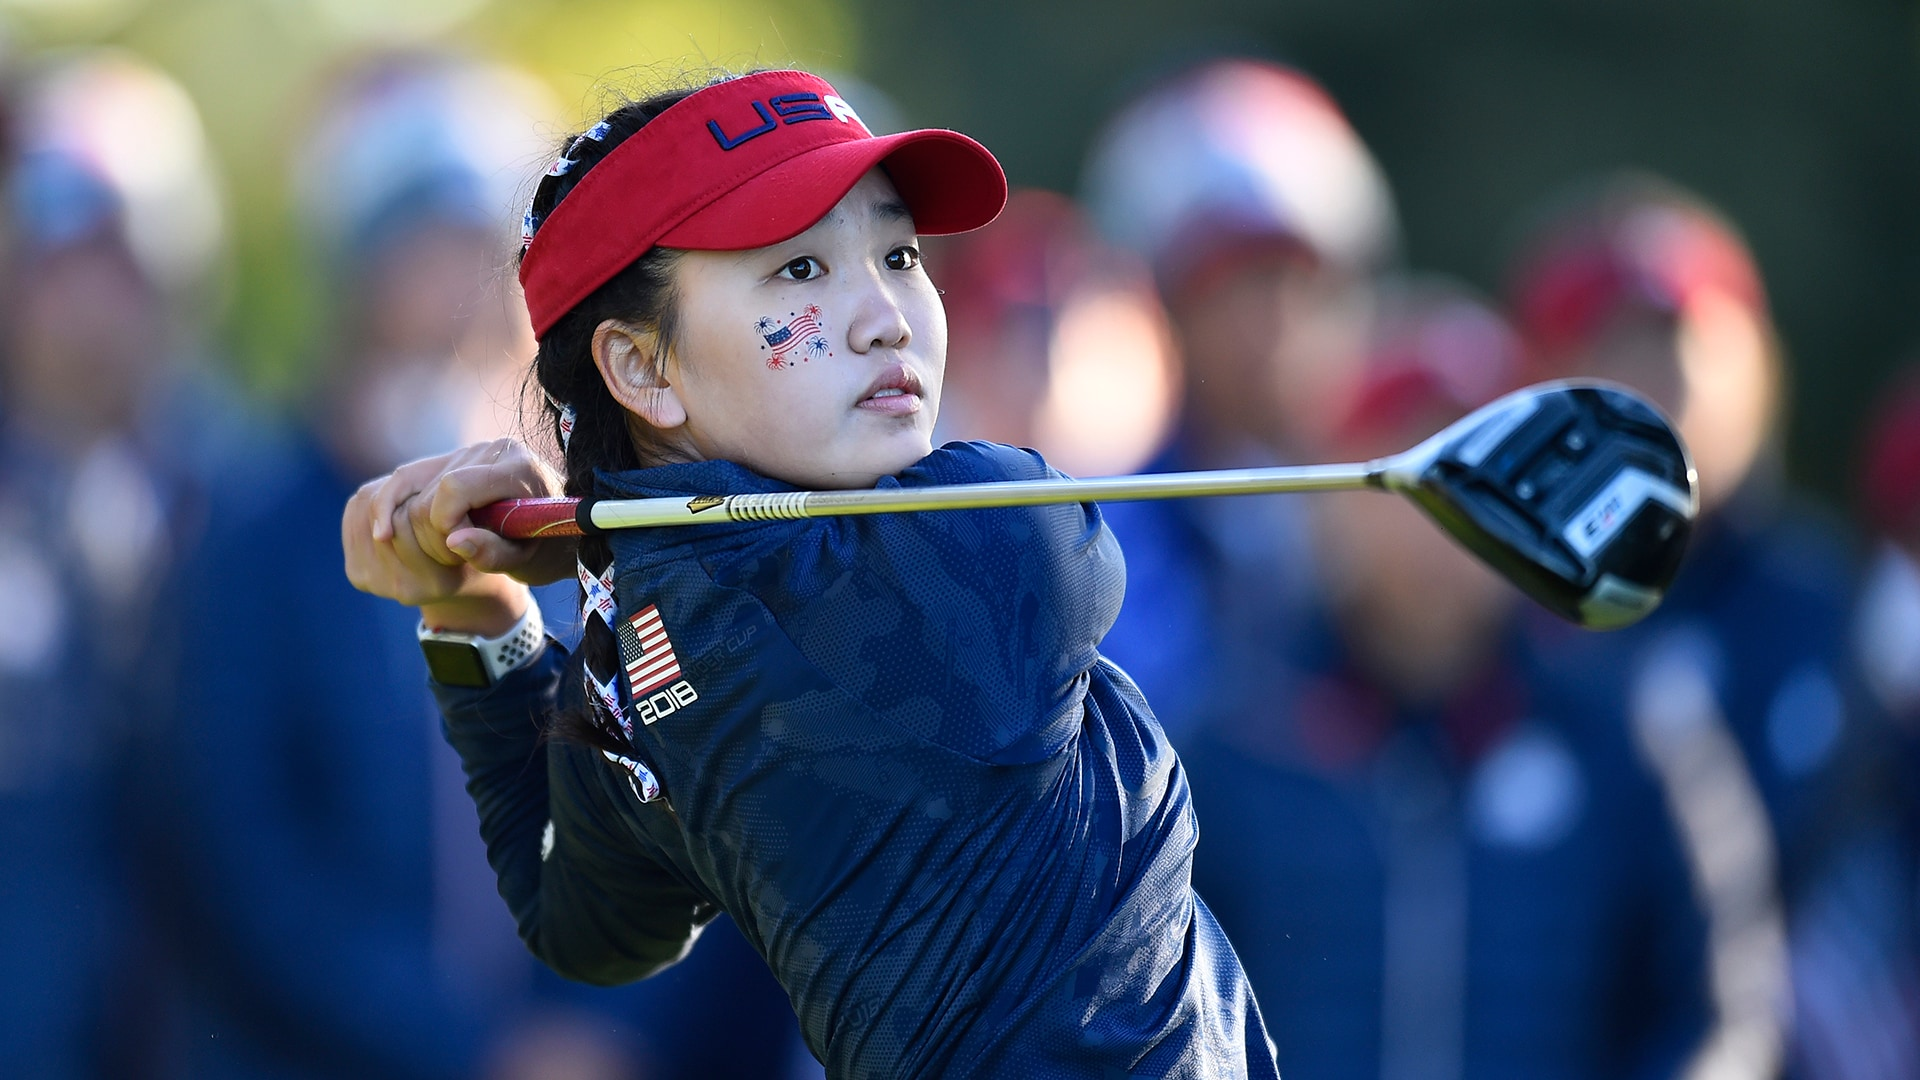 Li, 17, among early strong starts at second stage of LPGA Q-School